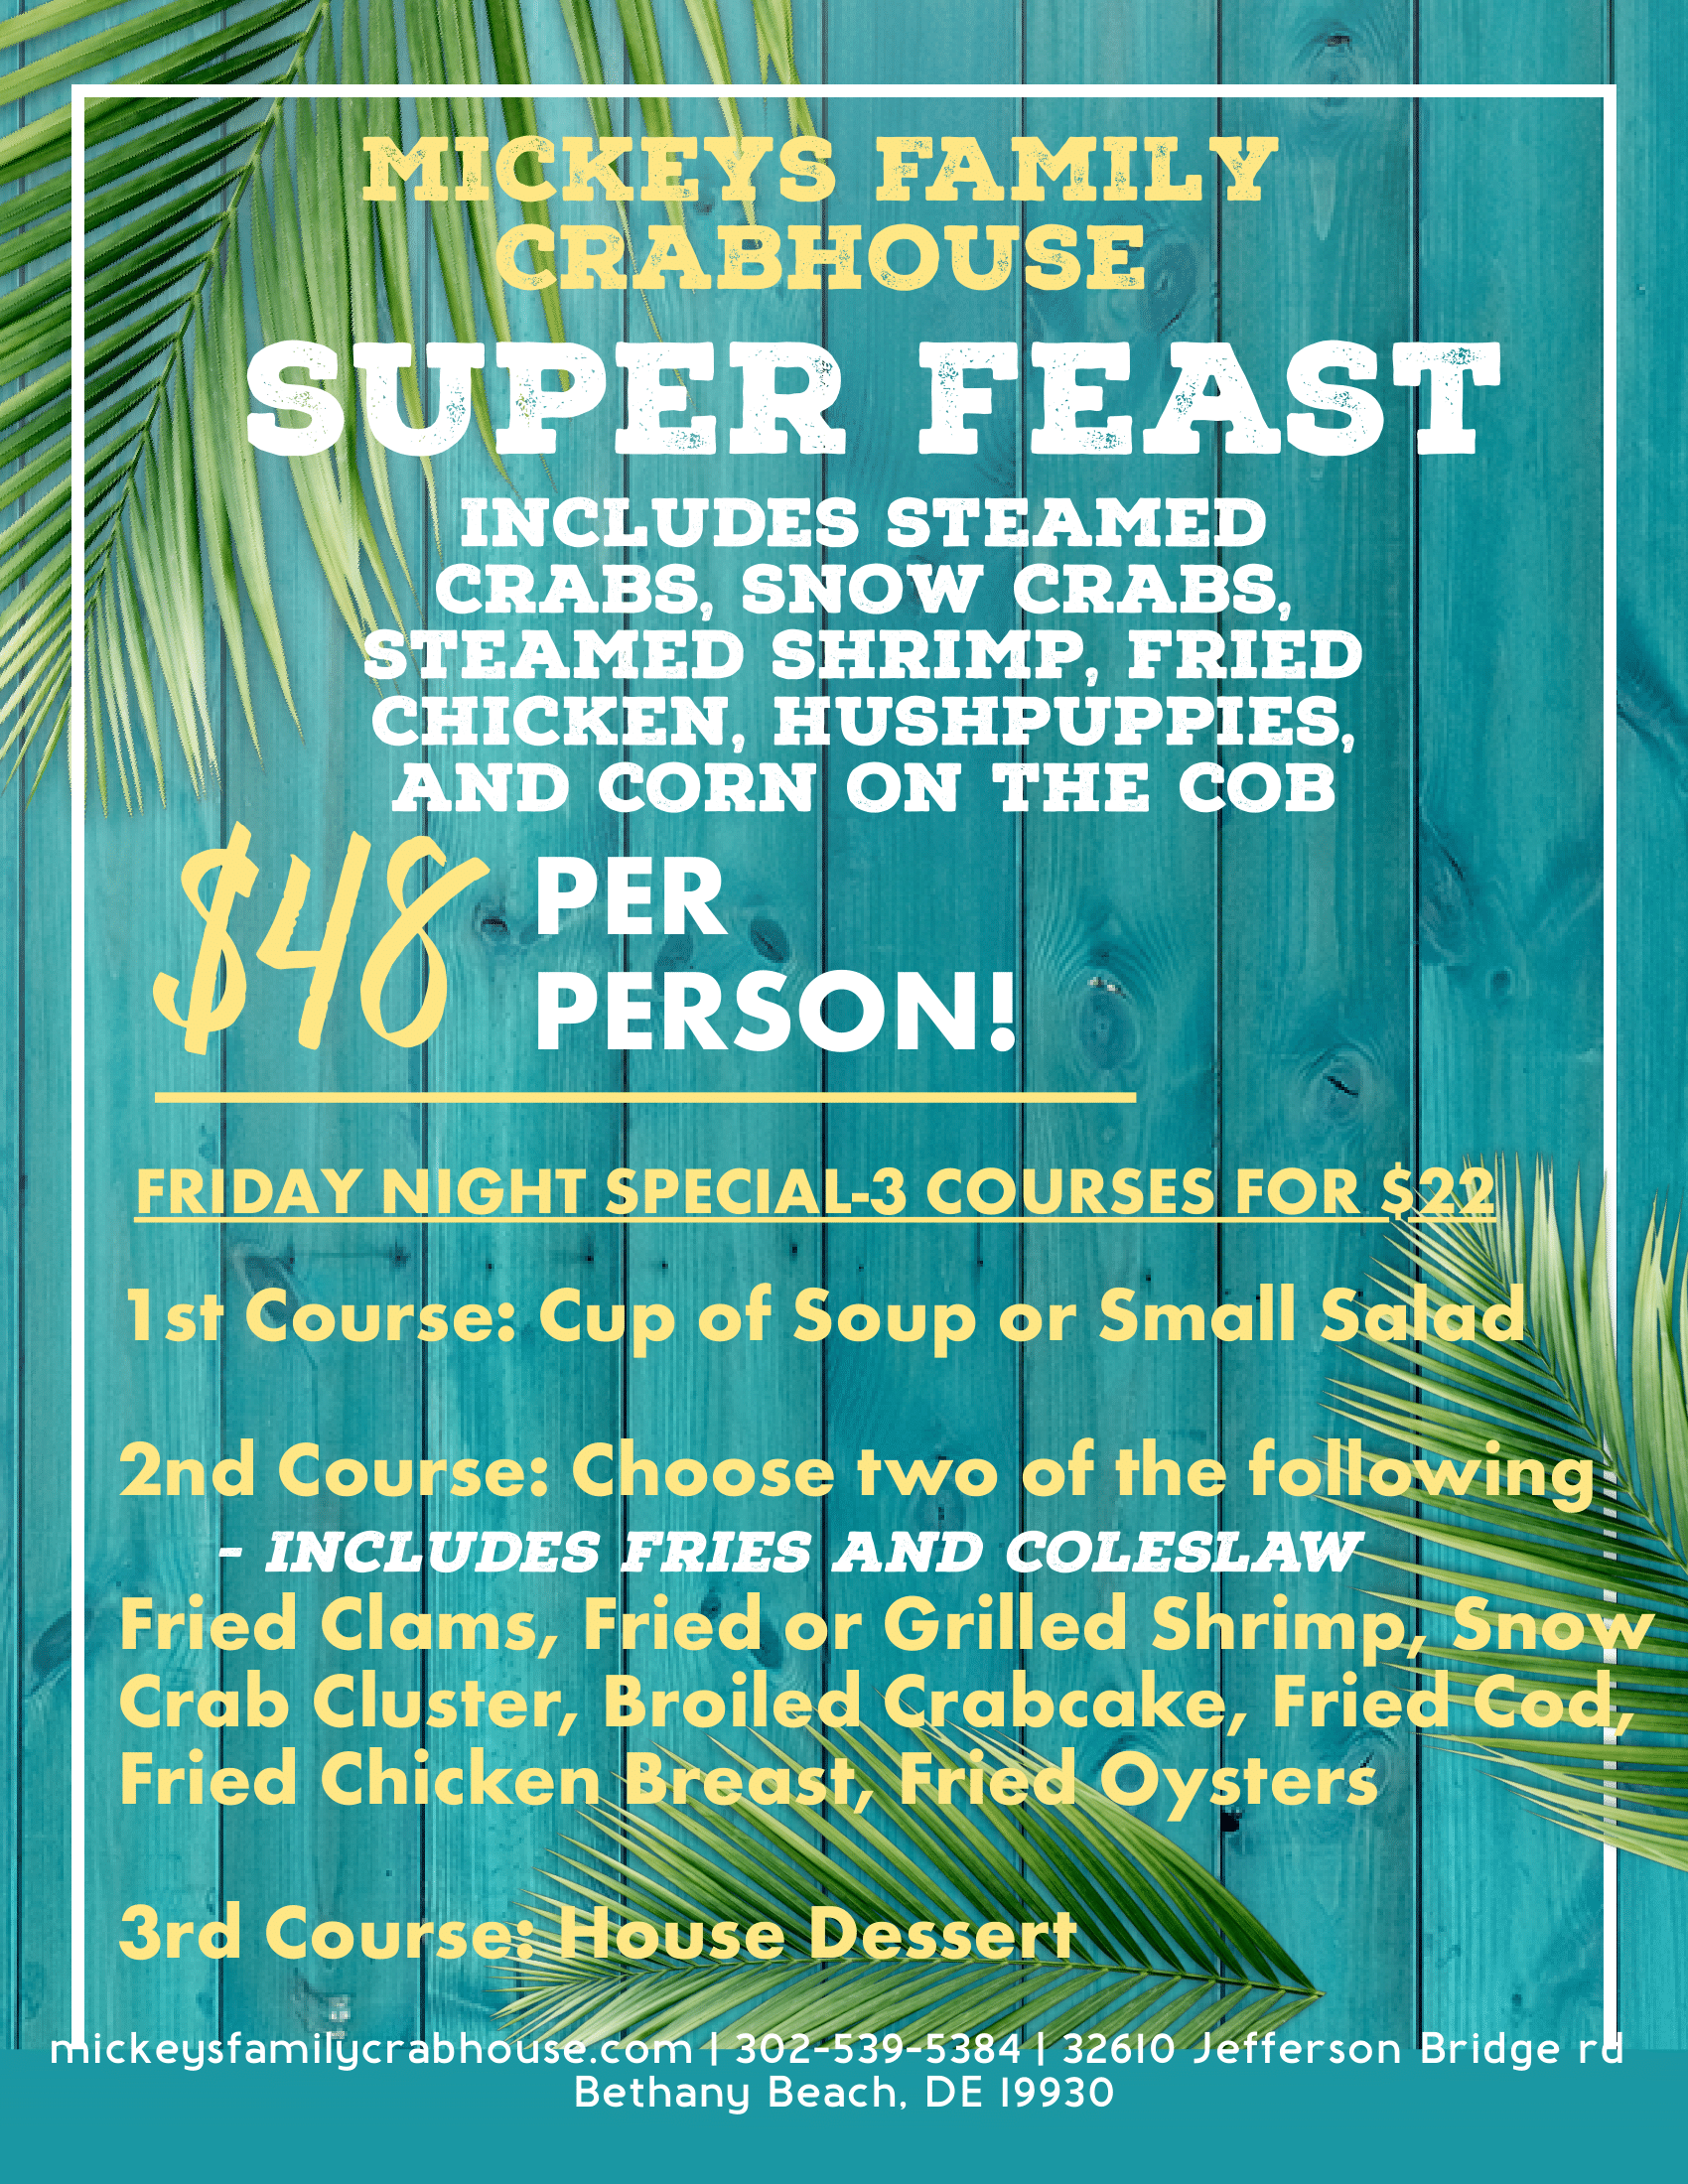 Super Feast. Includes steamed crabs, snow crabs, steamed shrimp, fried chicken, hushpuppies and corn on the cob. $48 per person!